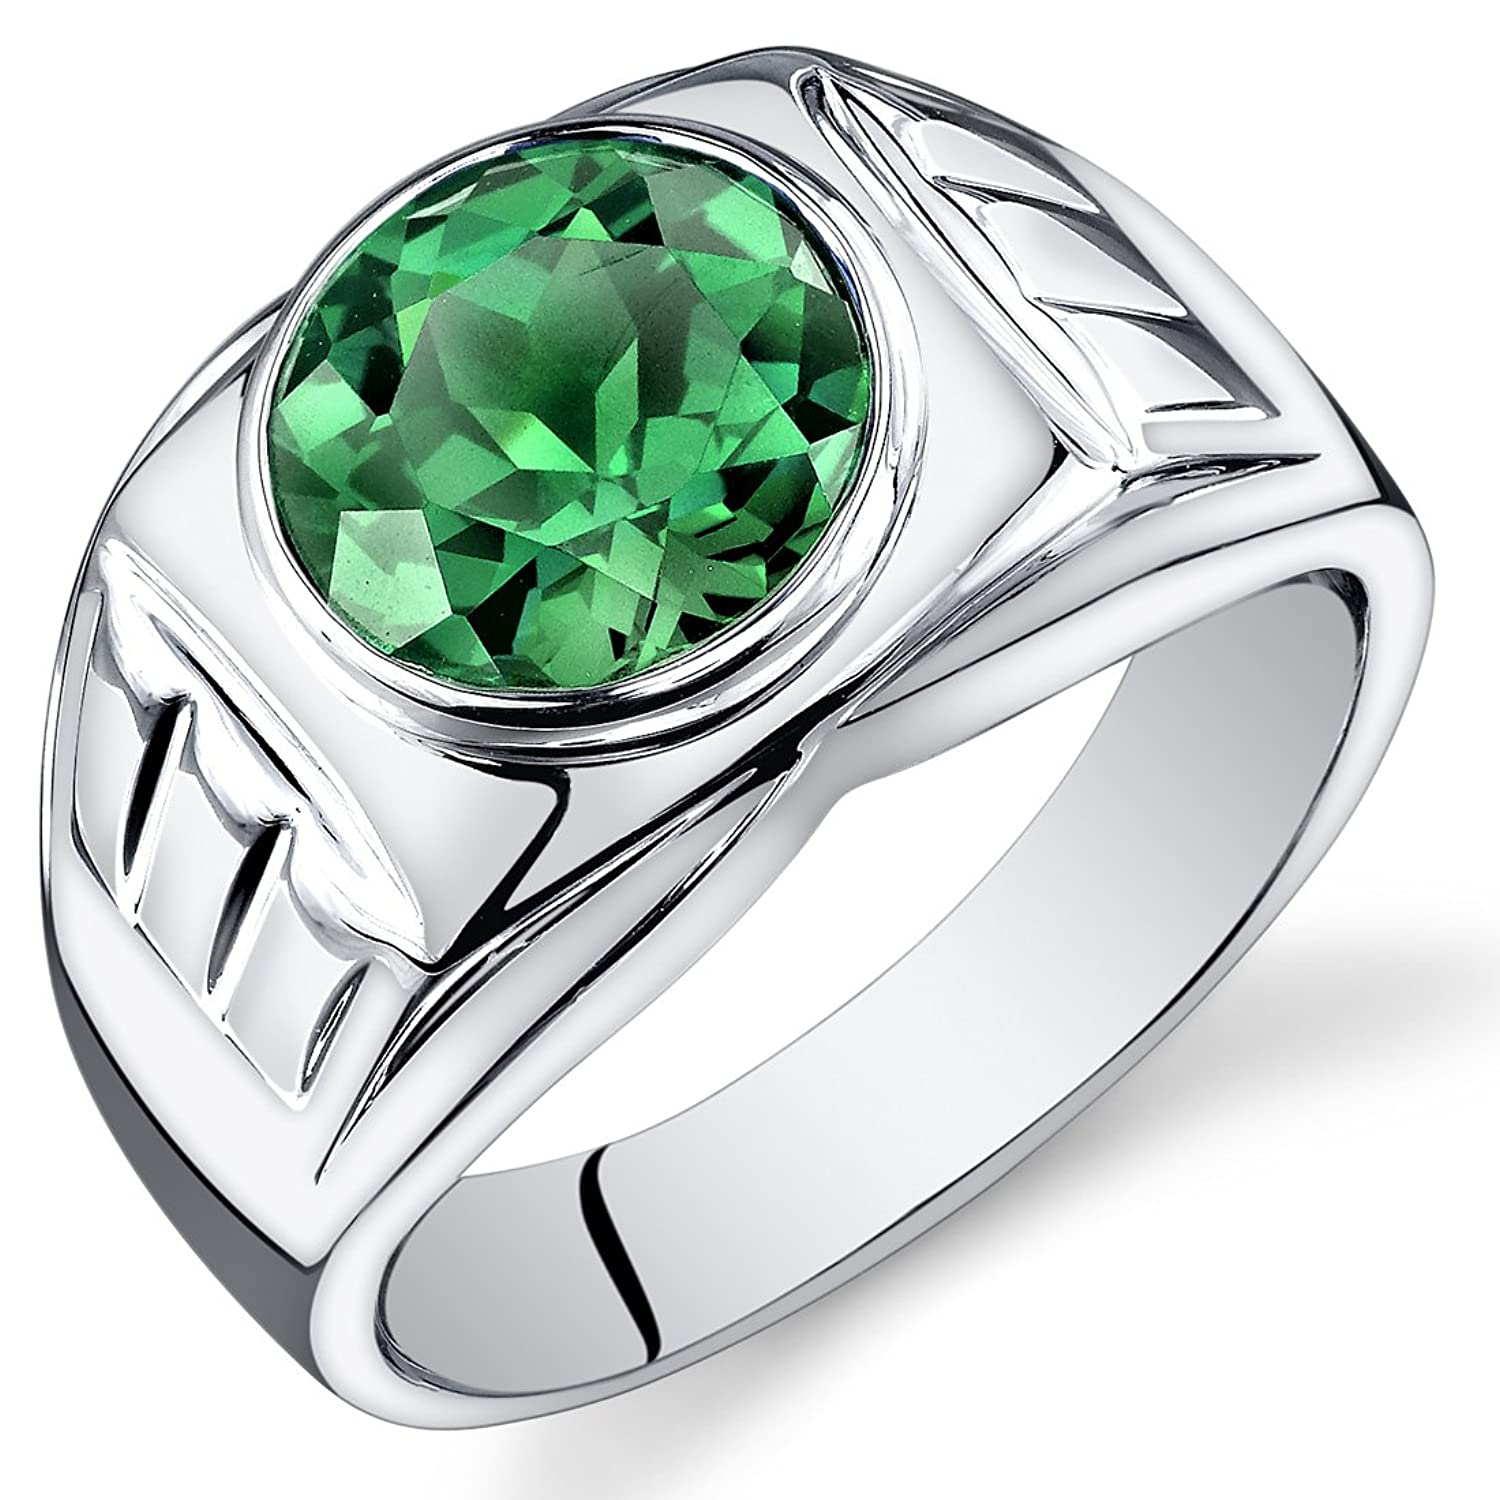 mv to hover rings tw diamond ct round cut kaystore zoom sterling en zm kay silver ring green